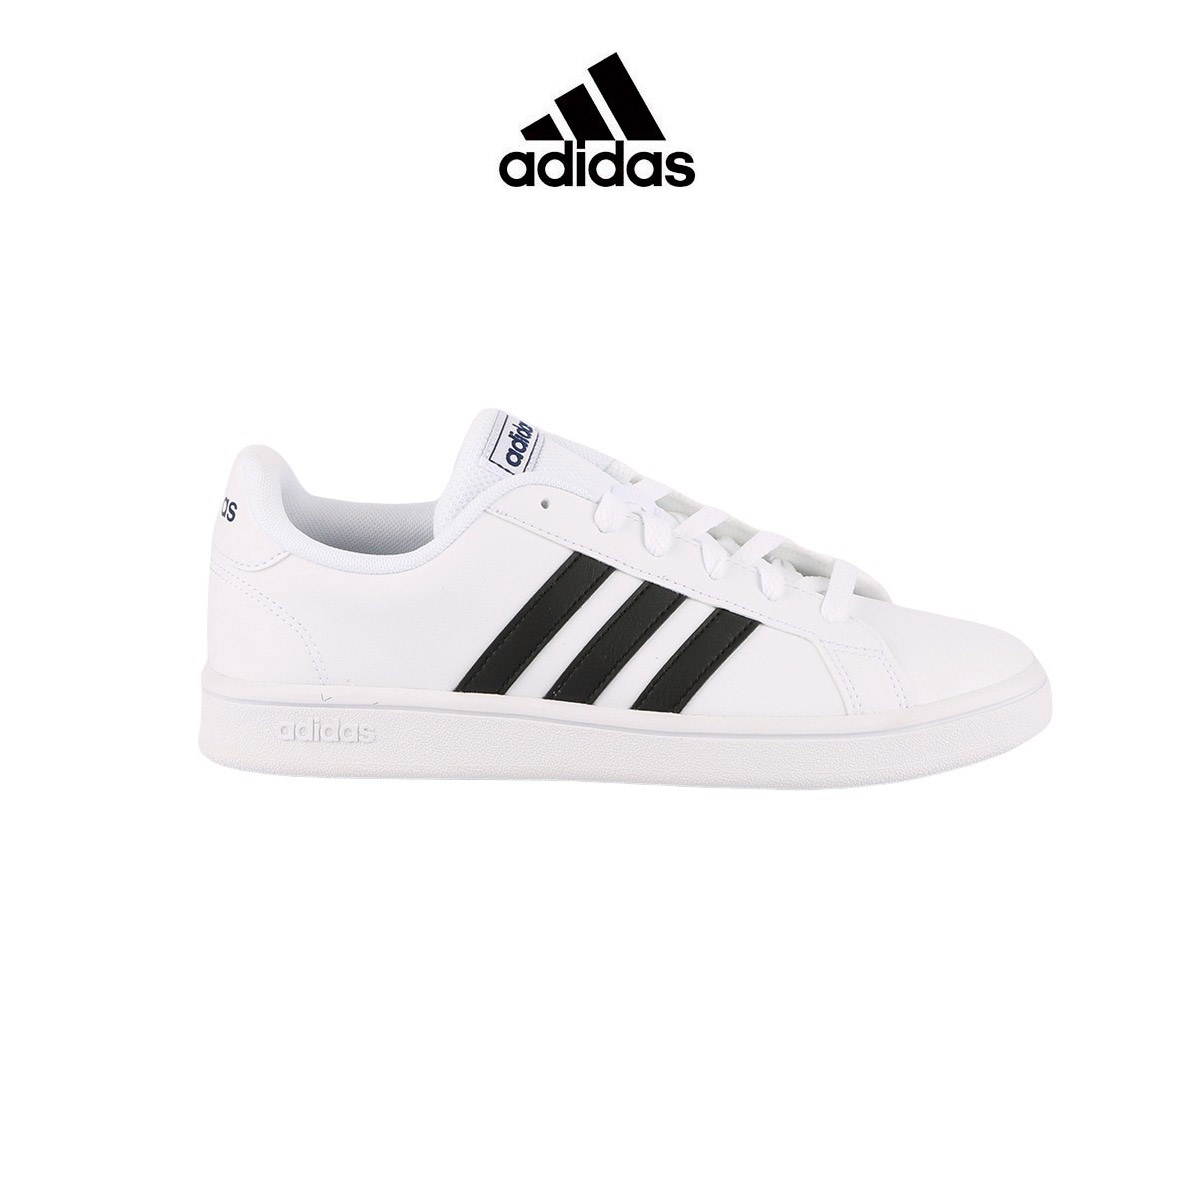 Adidas zapatilla Grand Court Base White Black Blanco bandas negras Hombre